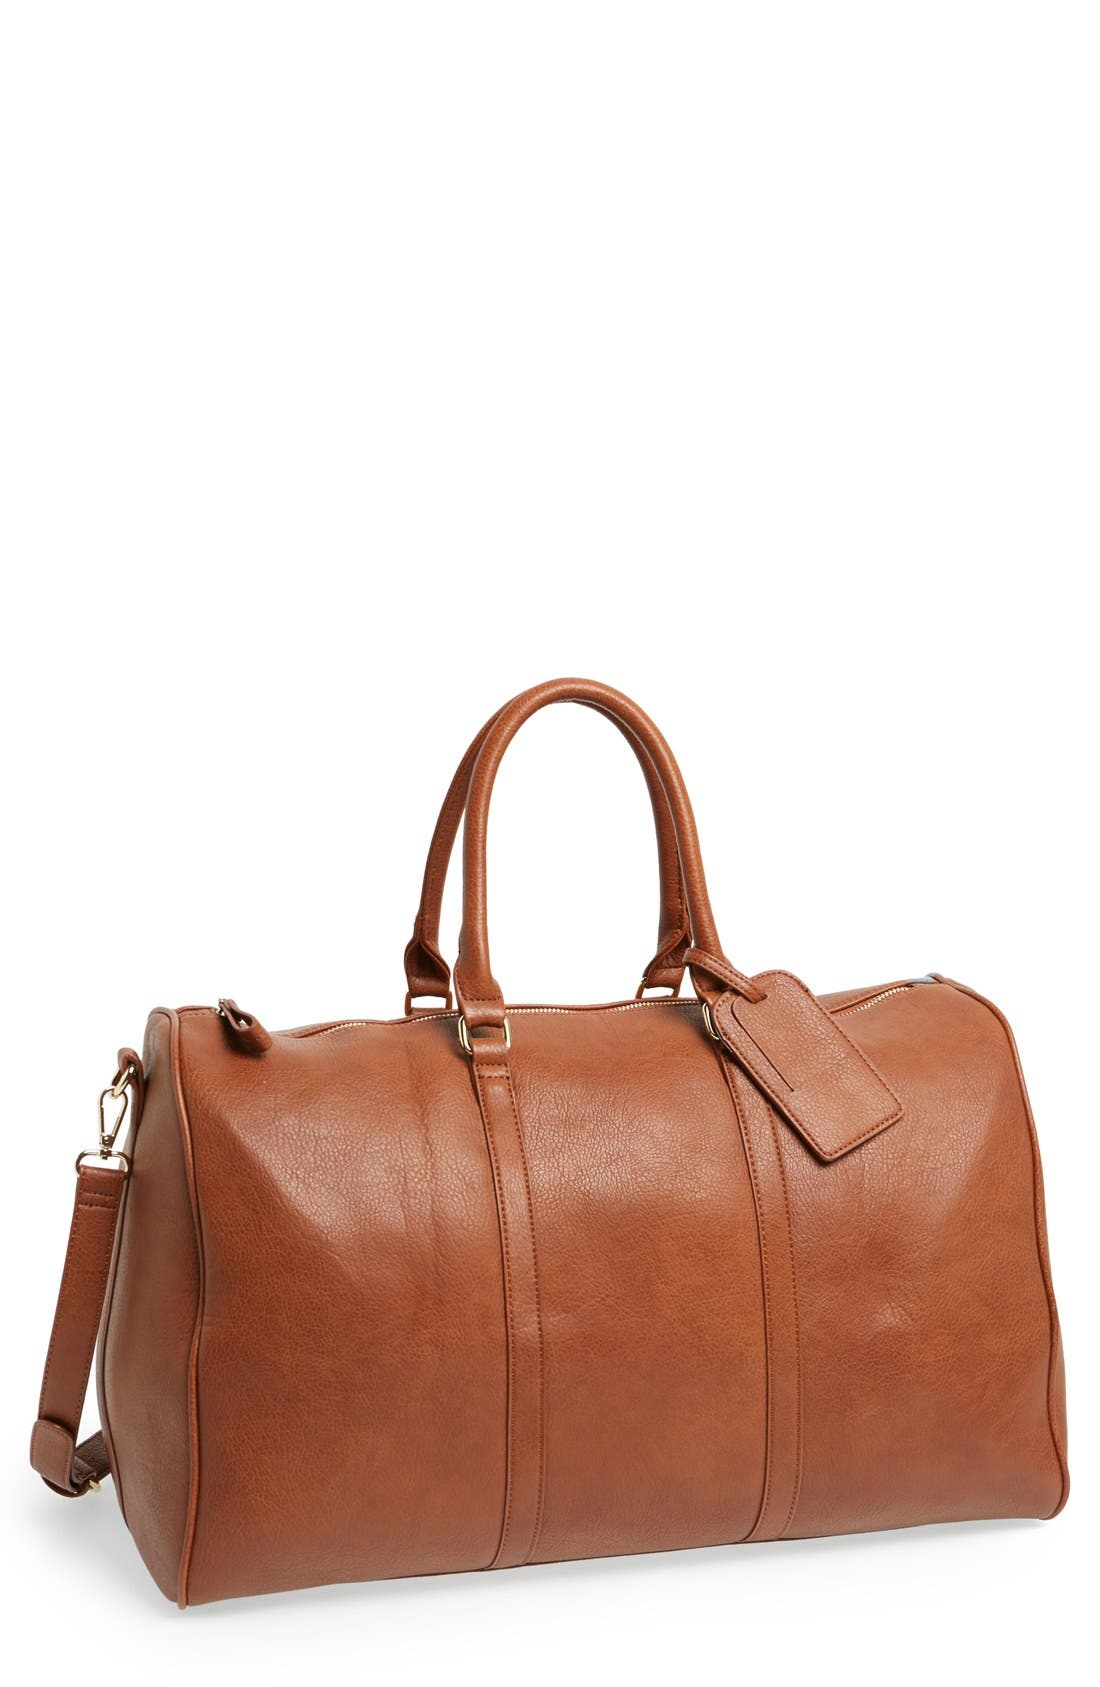 SOLE SOCIETY Lacie Faux Leather Duffle Bag, Main, color, BROWN